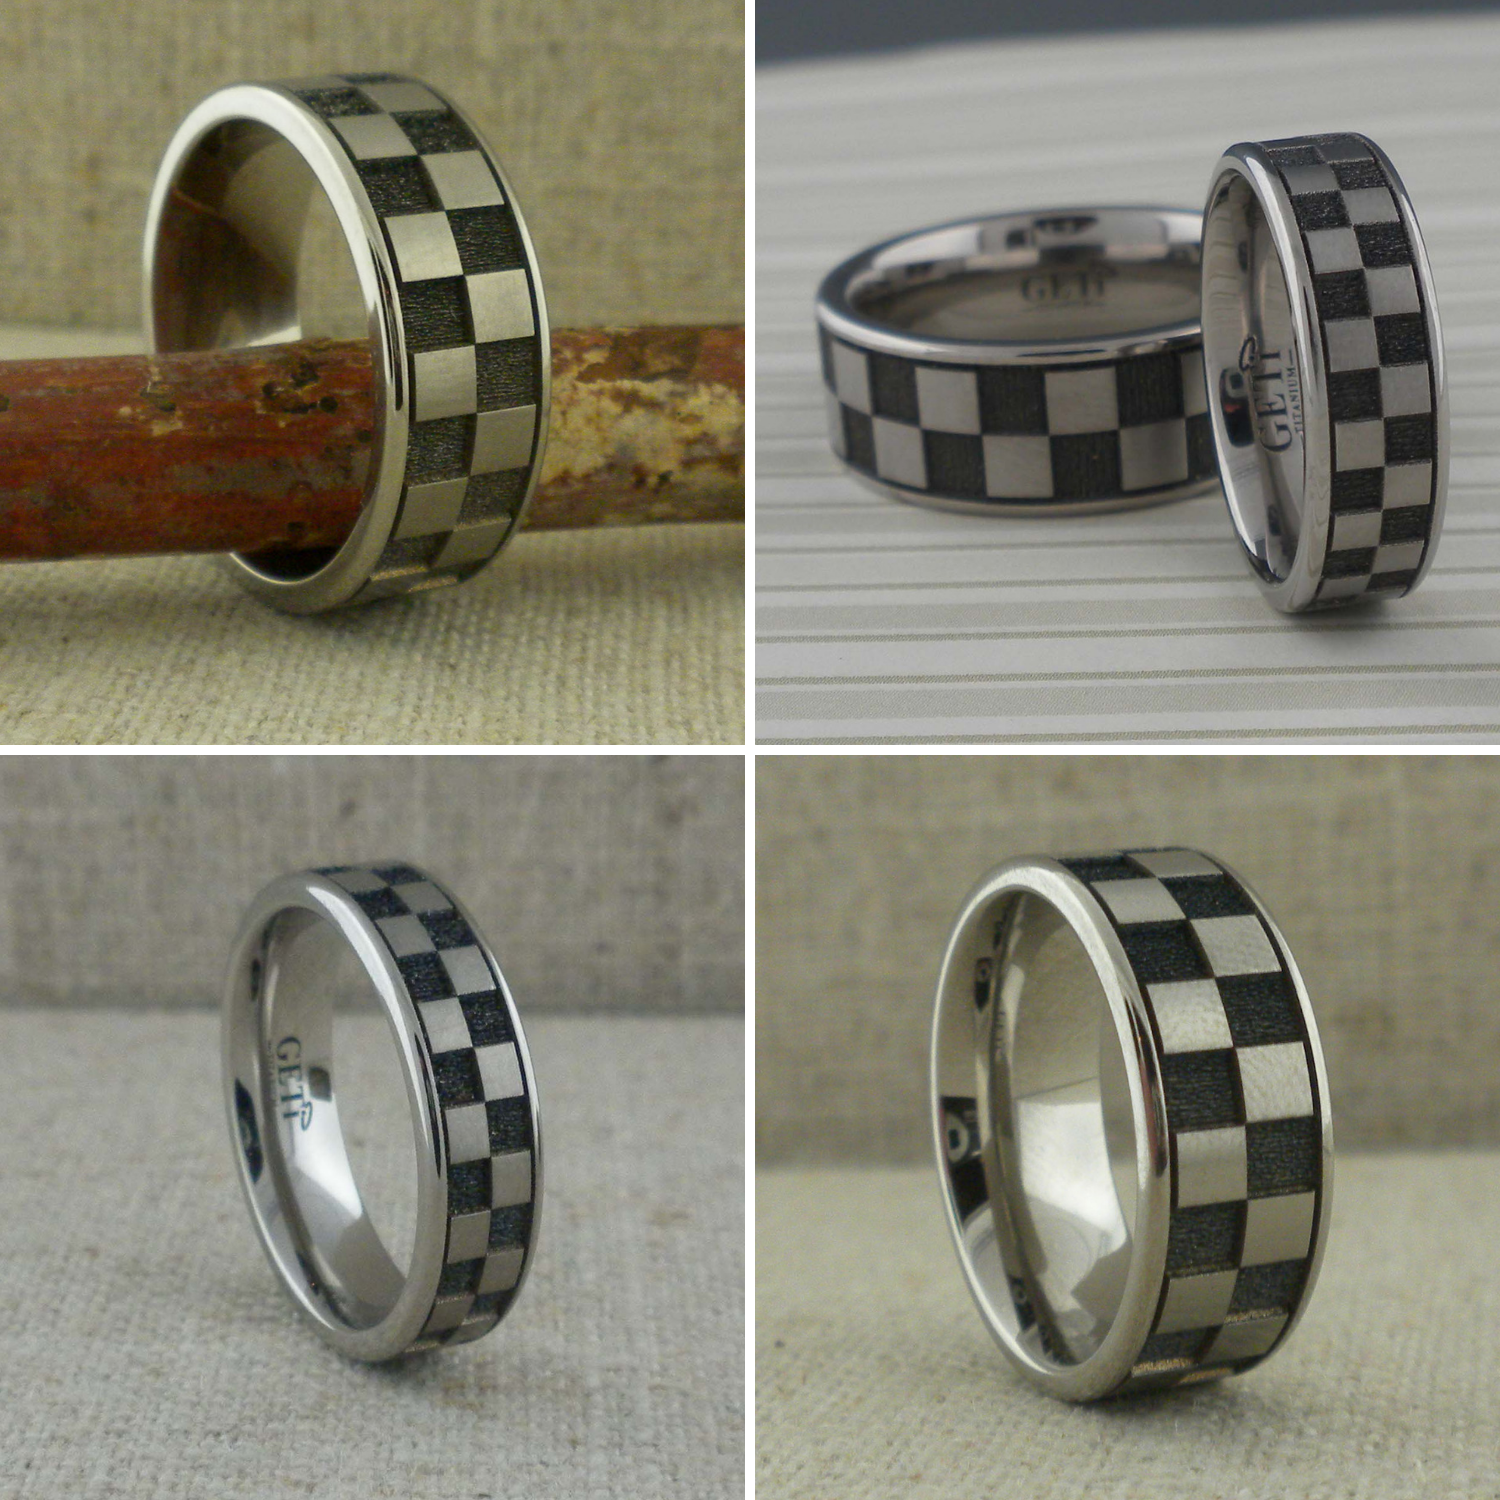 Checkered Flag Wedding Ring in Titanium by GETi